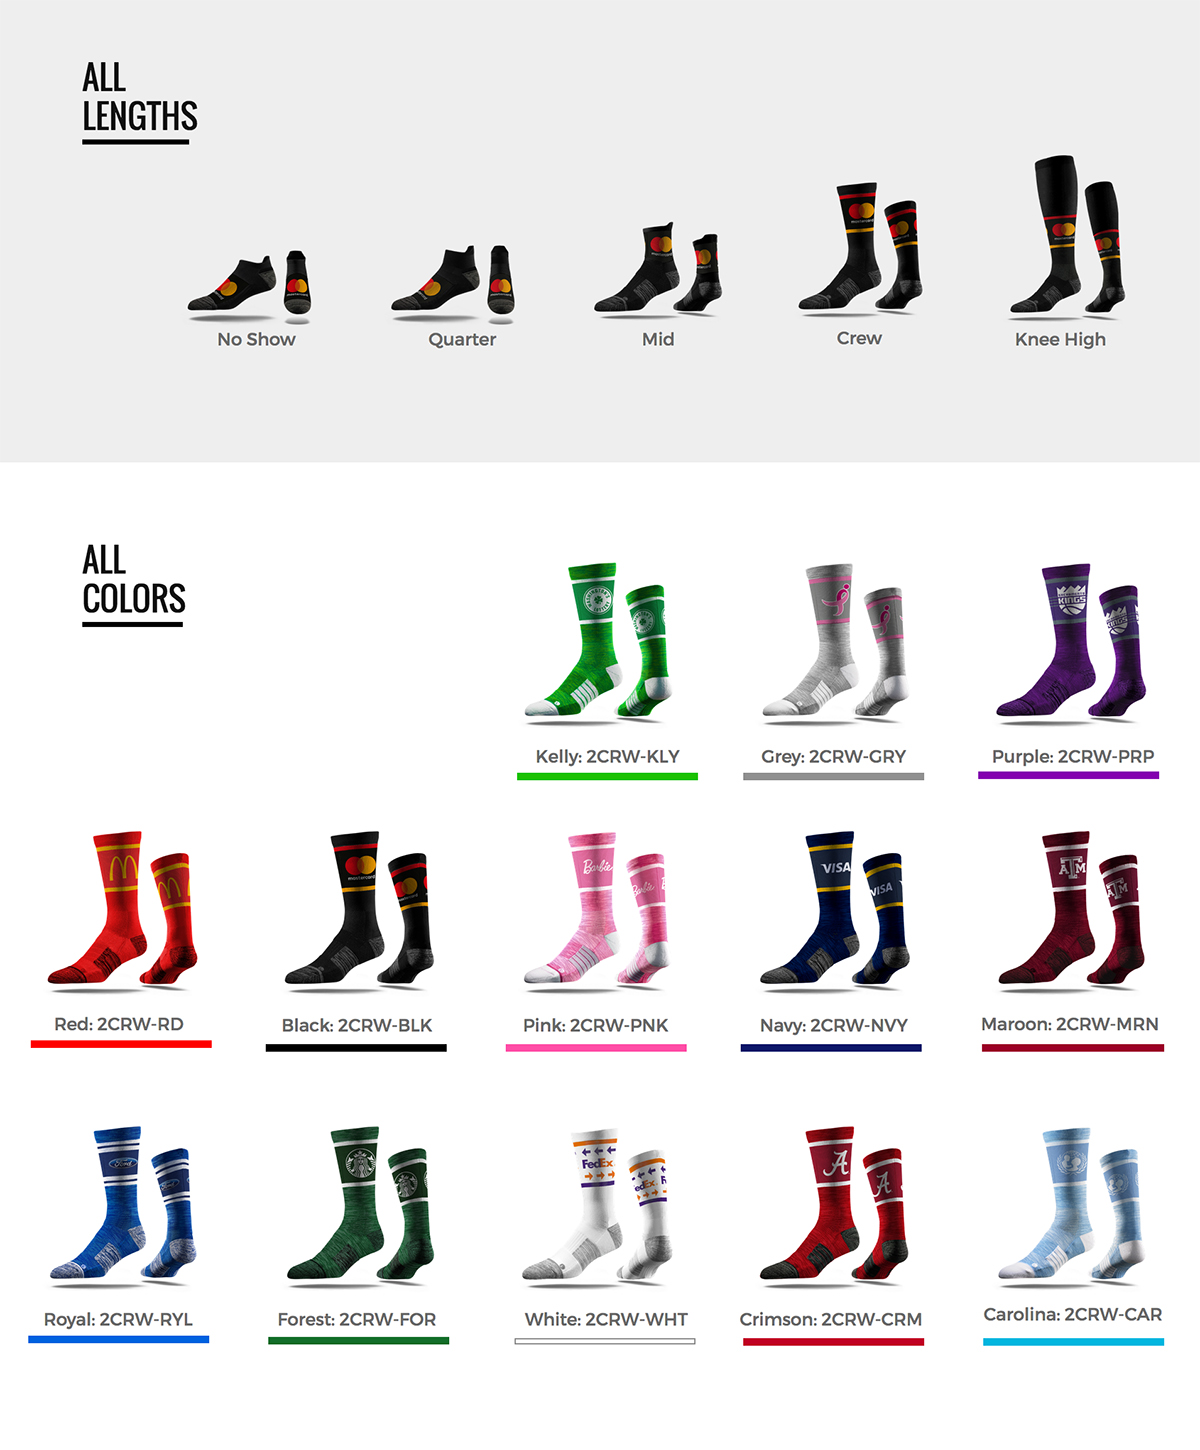 socks-lengths-colors